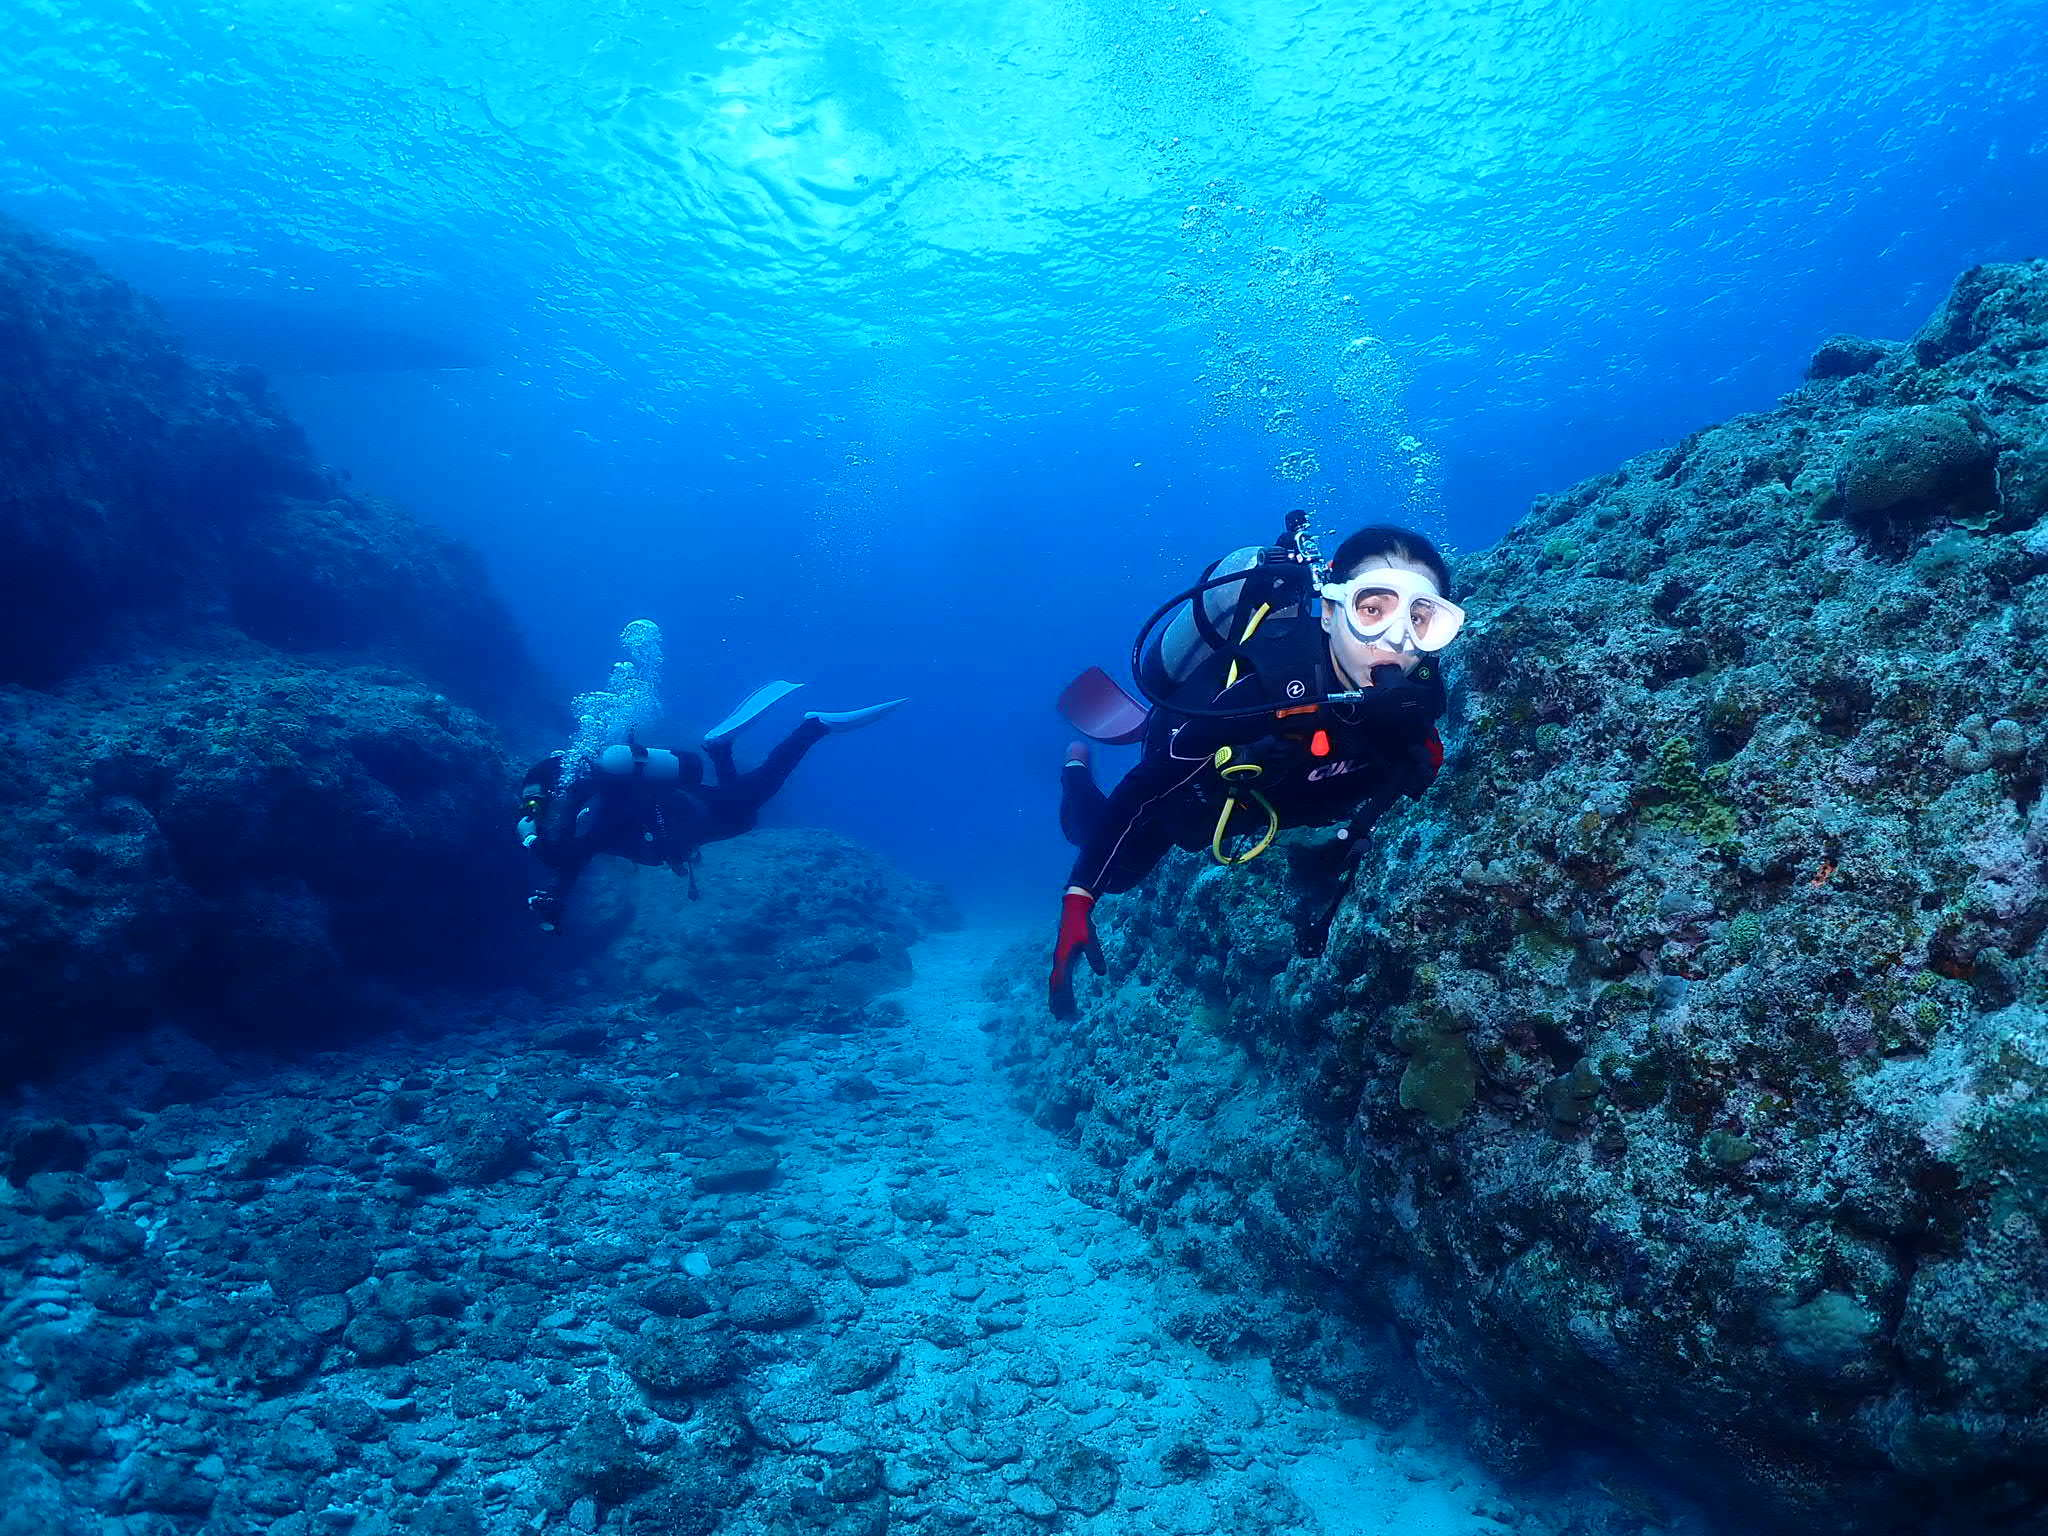 Scubadiving at over 60 yrears old